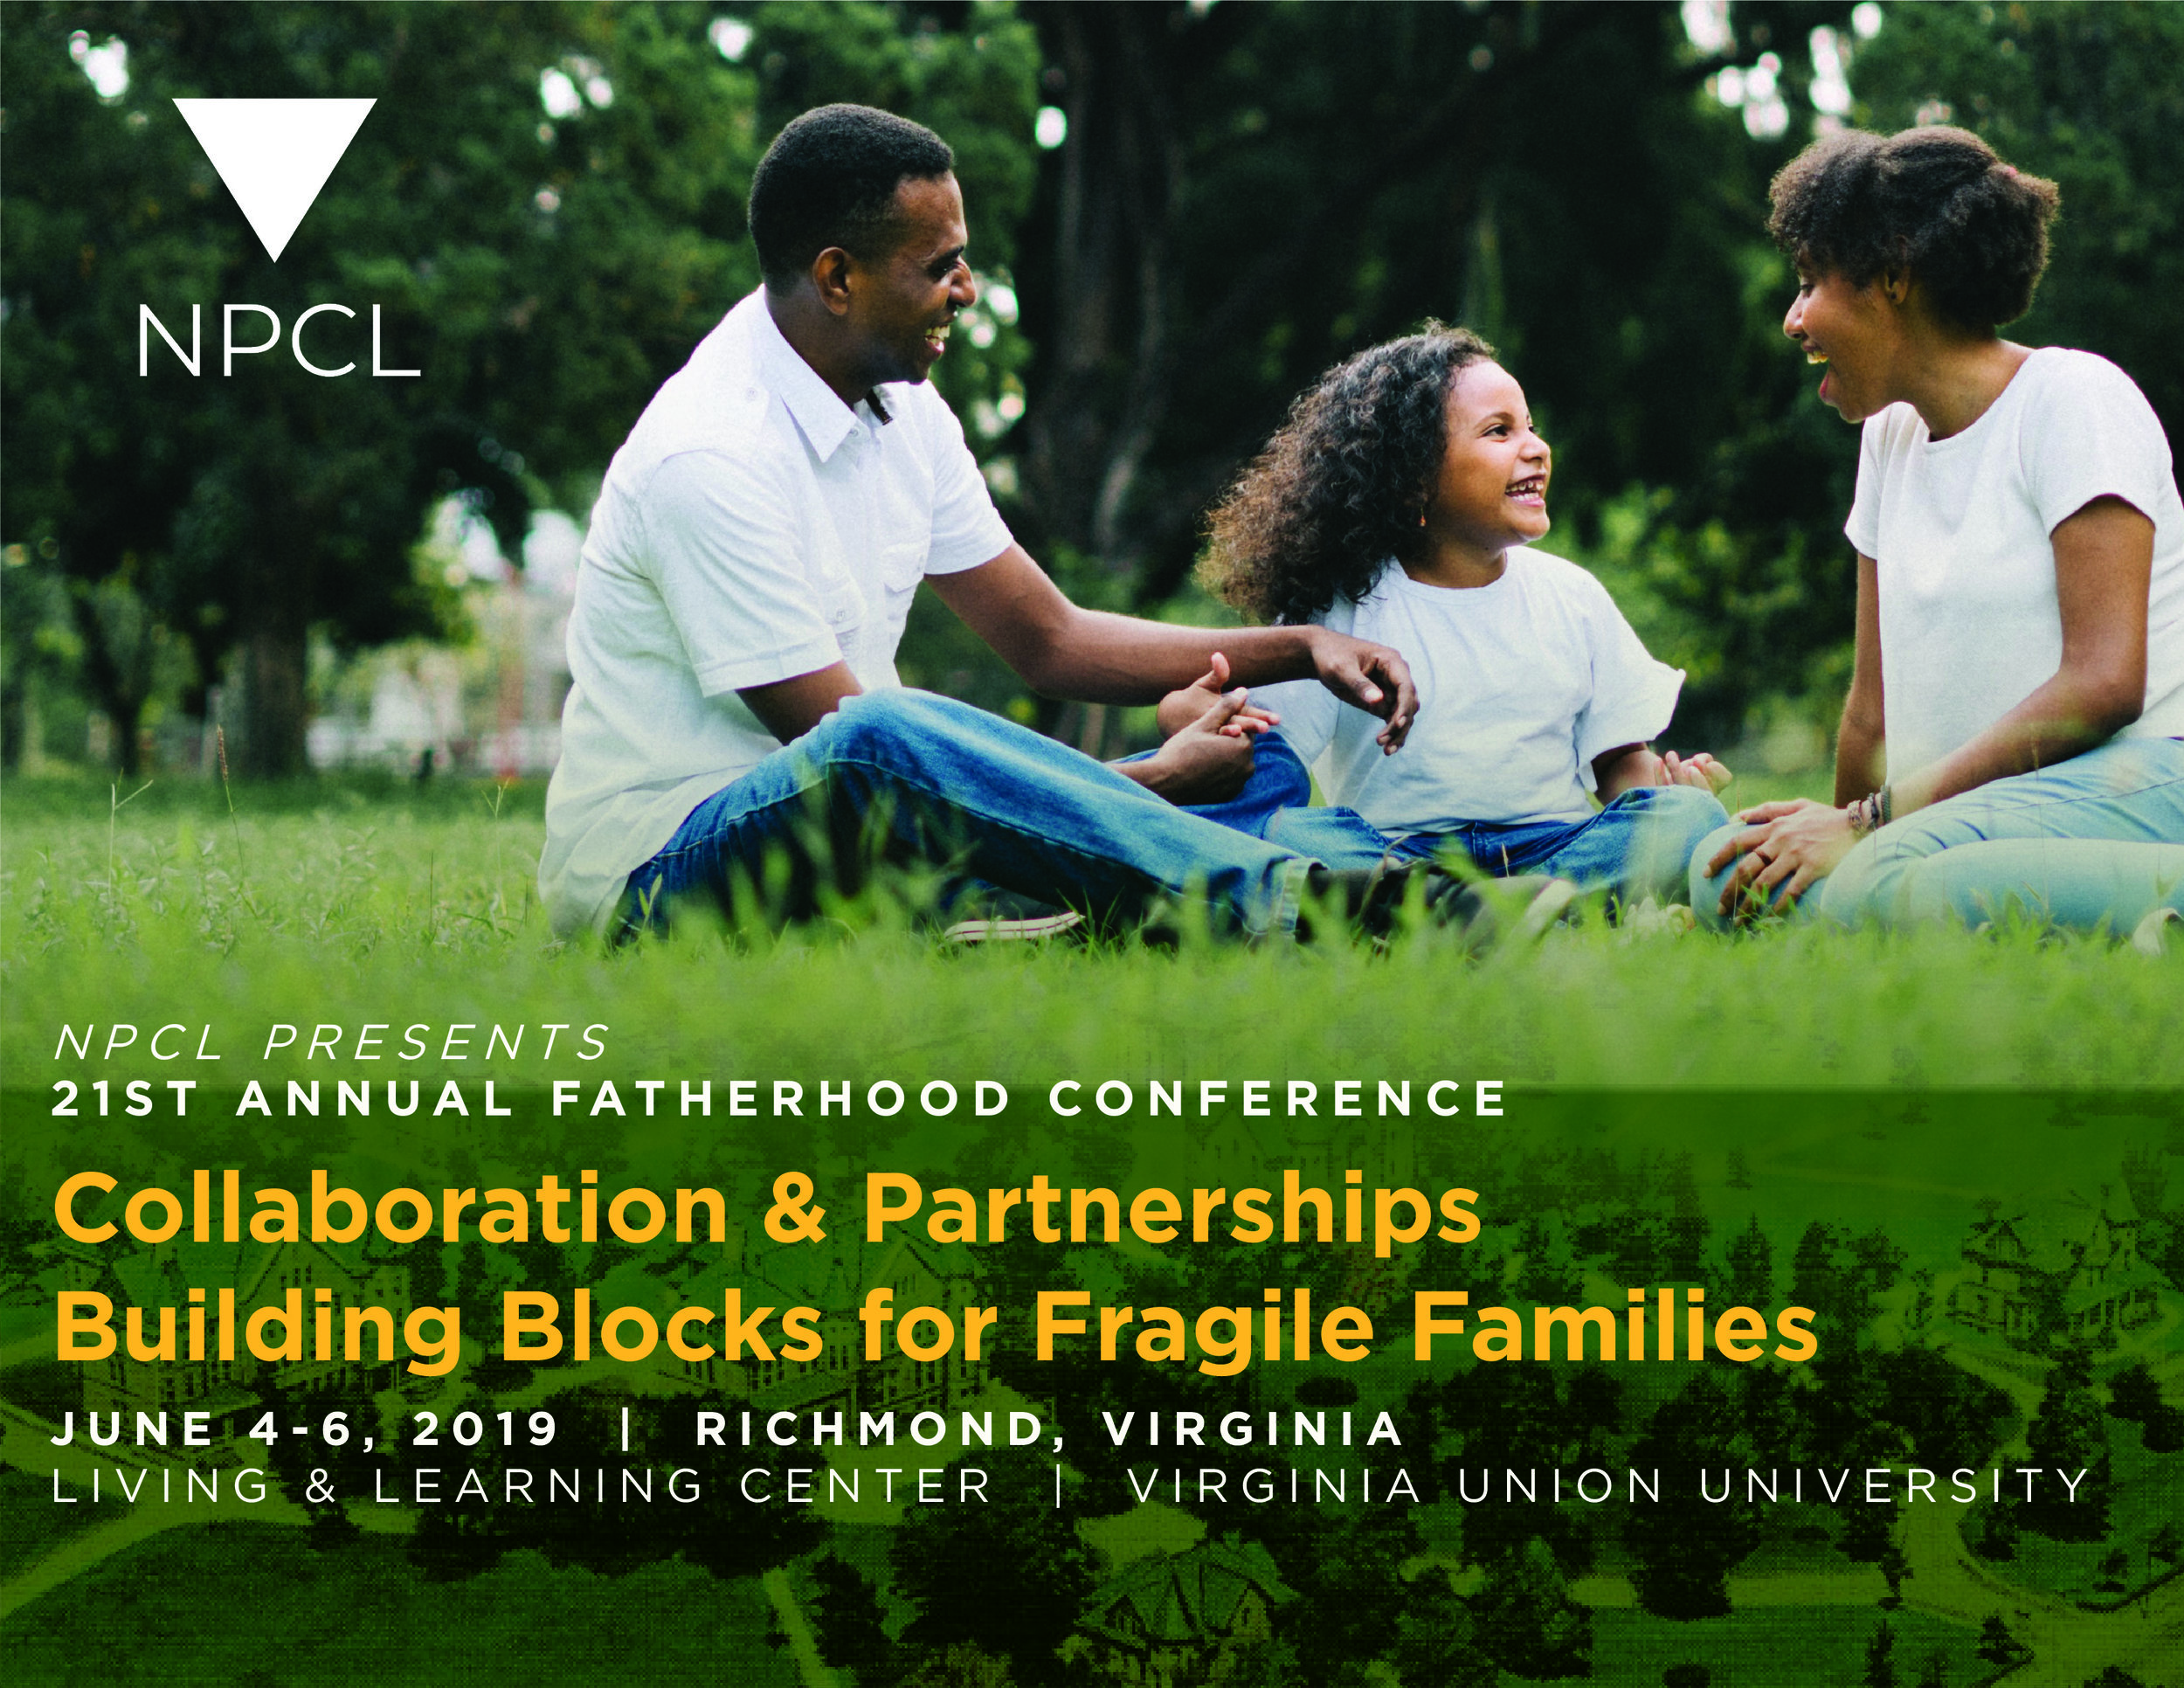 REGISTER ONLINE NOW! - This year's Conference theme is focused on community agencies partnering their resources to give parents the tools (building blocks) they need to raise happy, healthy and successful children. Join us June 4-6 at Virginia Union University to learn more!